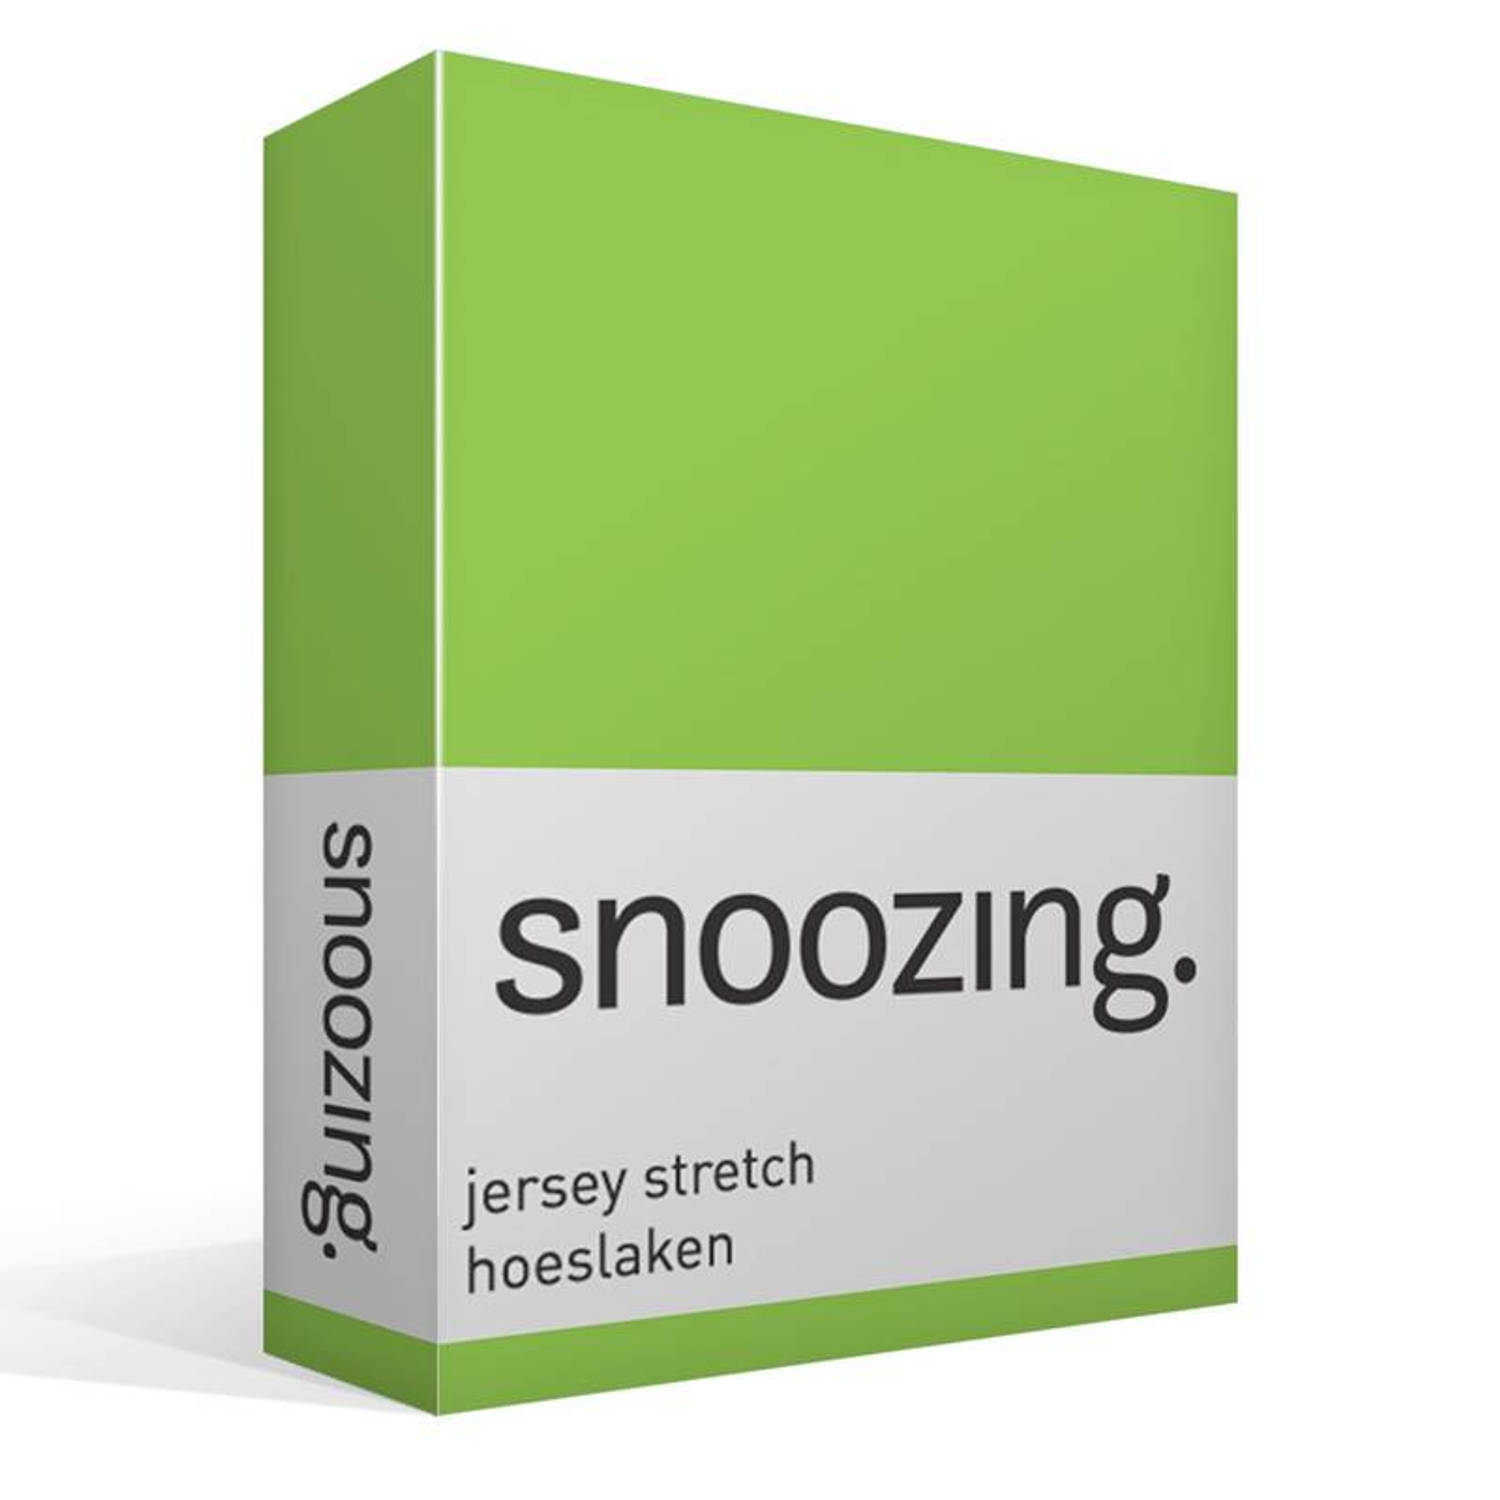 Snoozing jersey stretch hoeslaken - 1-persoons (90/100x200/220 cm)